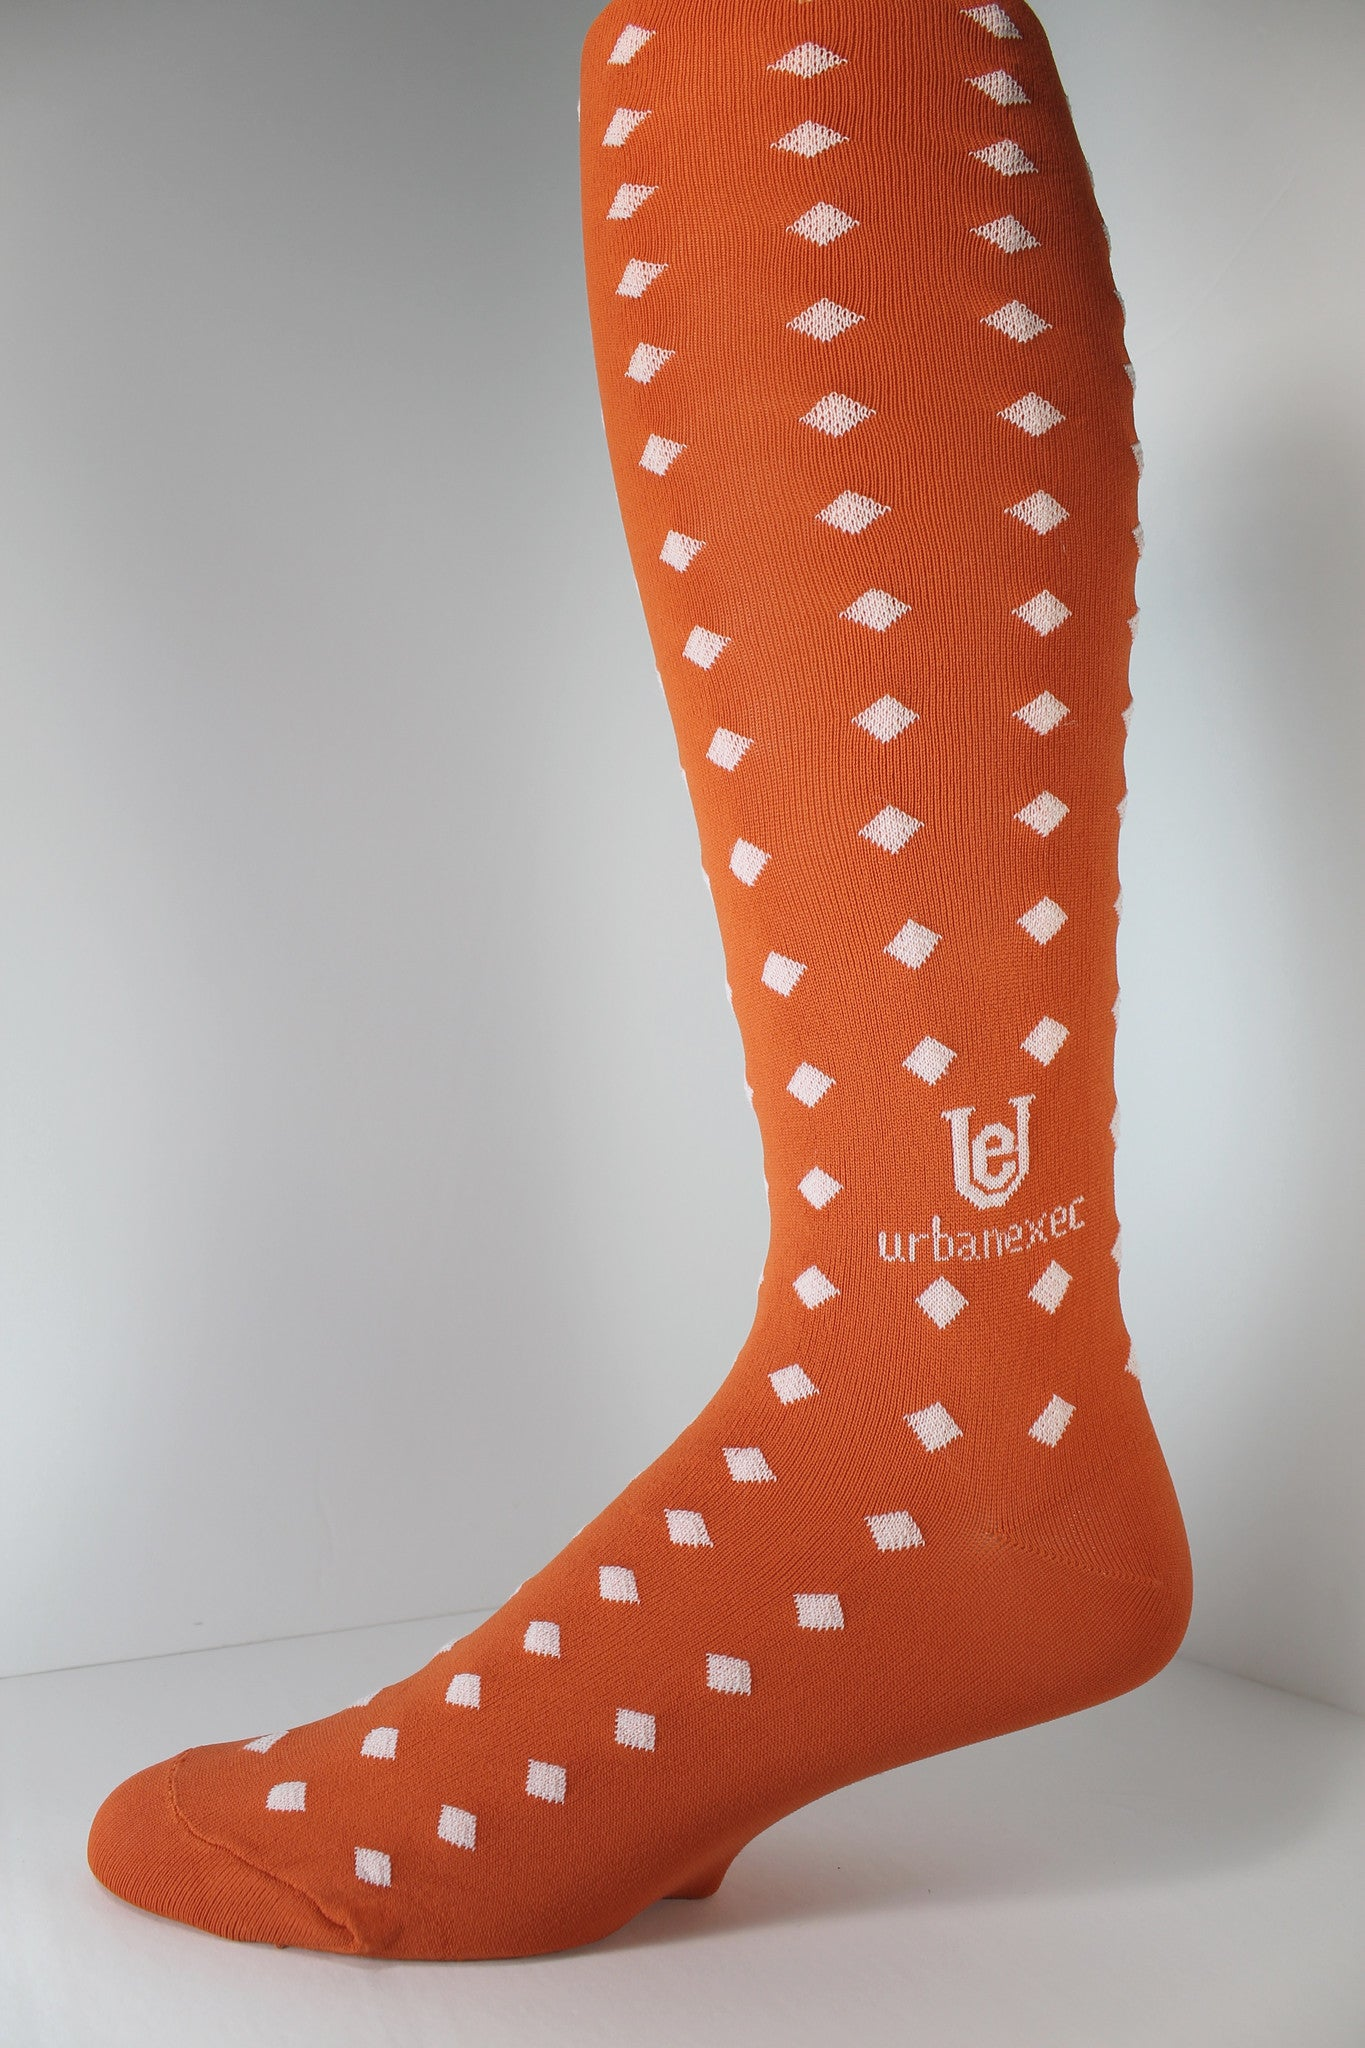 Men's Socks Over-the-Calf ThinSkin Gameday Orange/White Diamonds